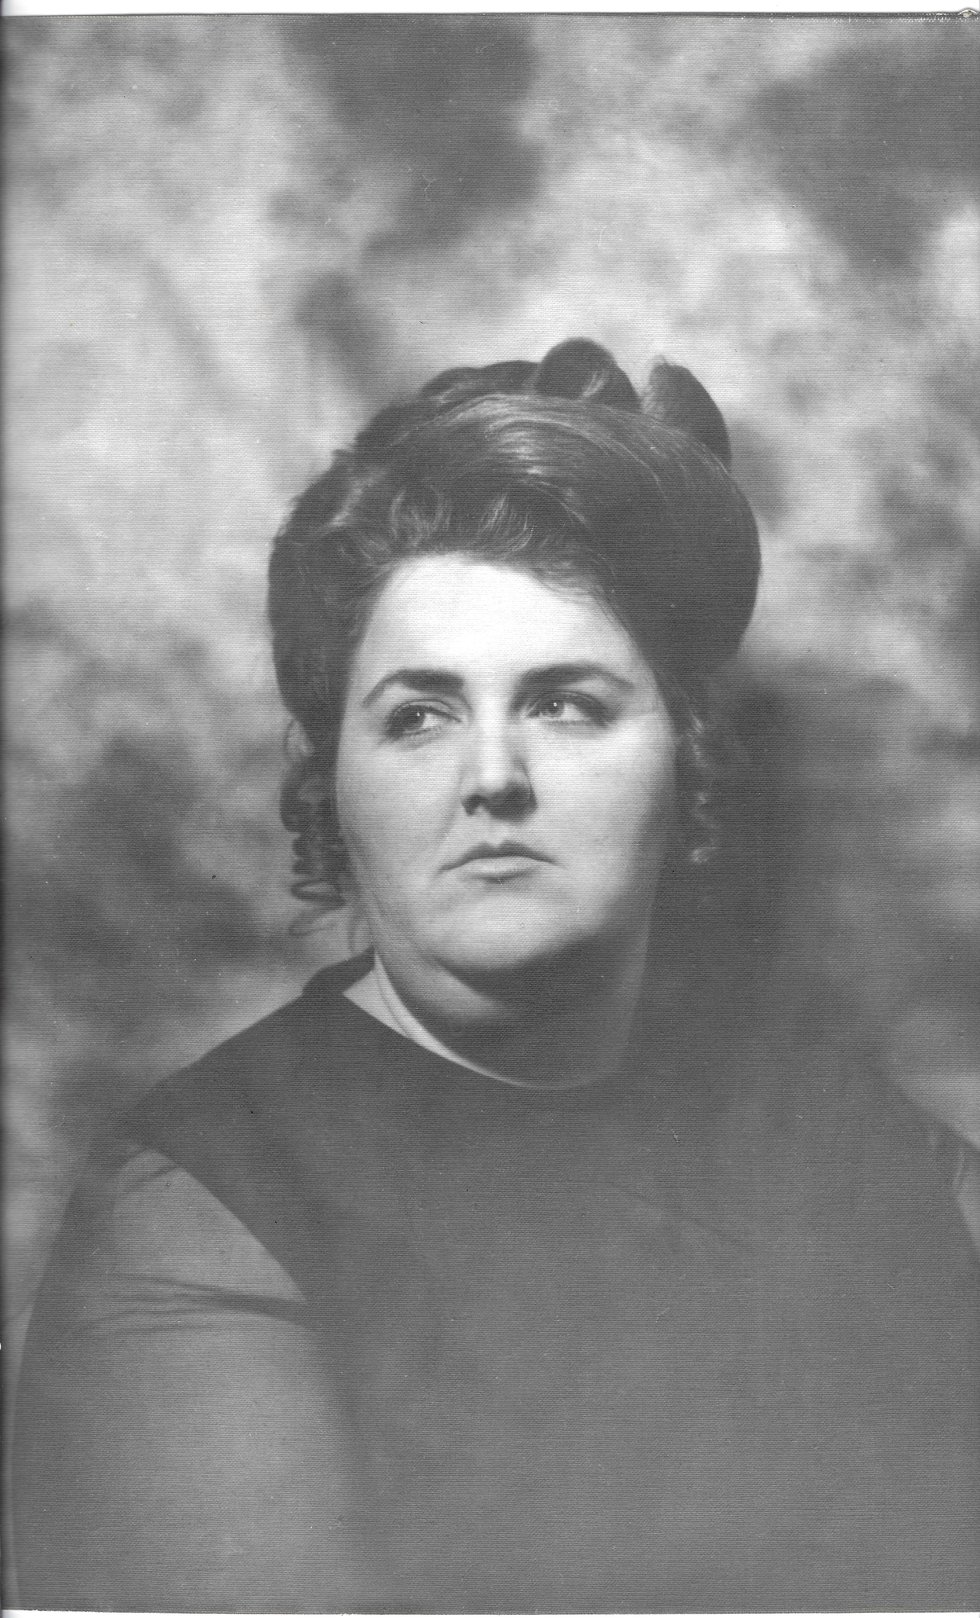 """A Funeral Mass for Judith """"Judy"""" Ann Poirier, age 80, of Ogdensburg, NY, will be held on..."""